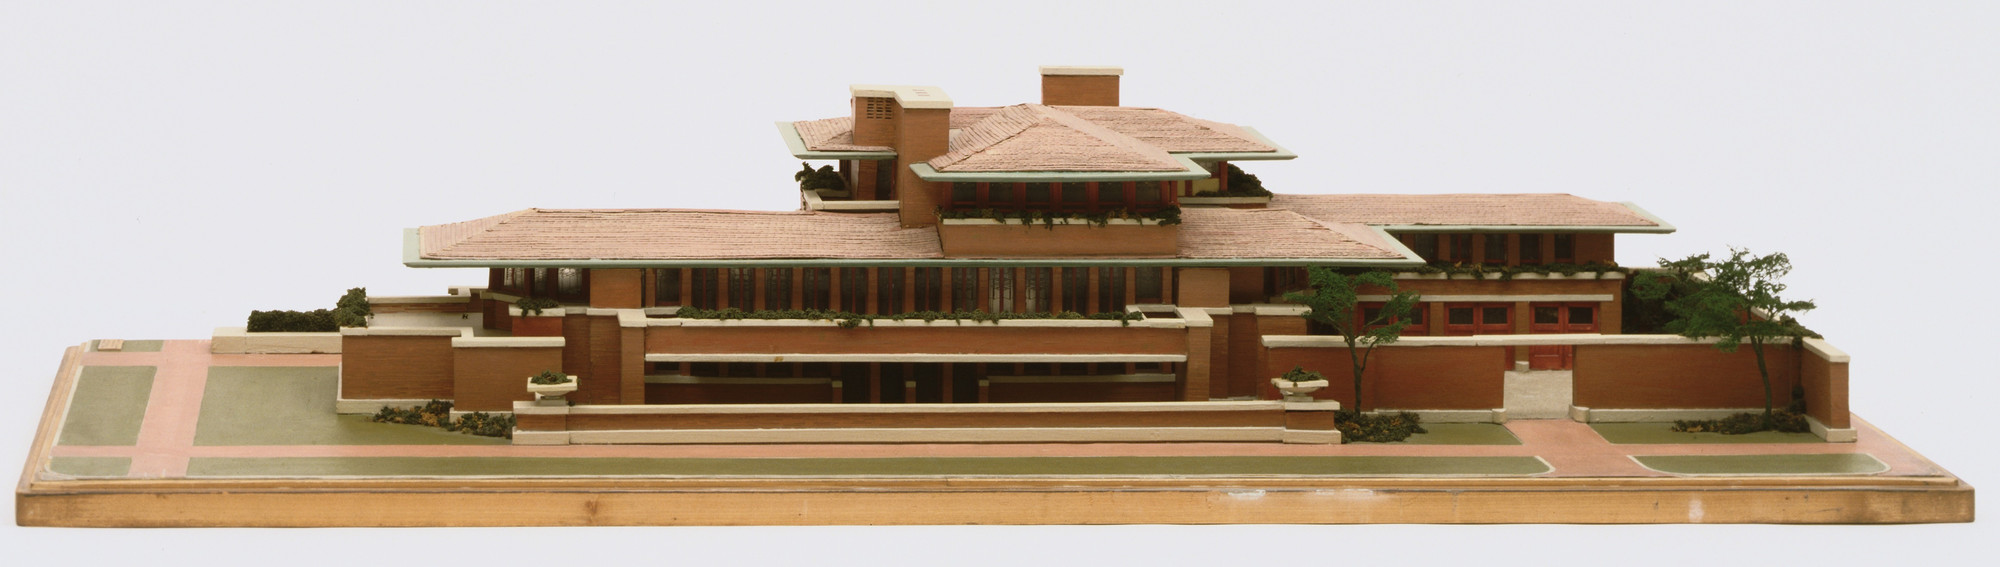 Frank Lloyd Wright. Frederick C. Robie House, Chicago, Illinois. 1906-09